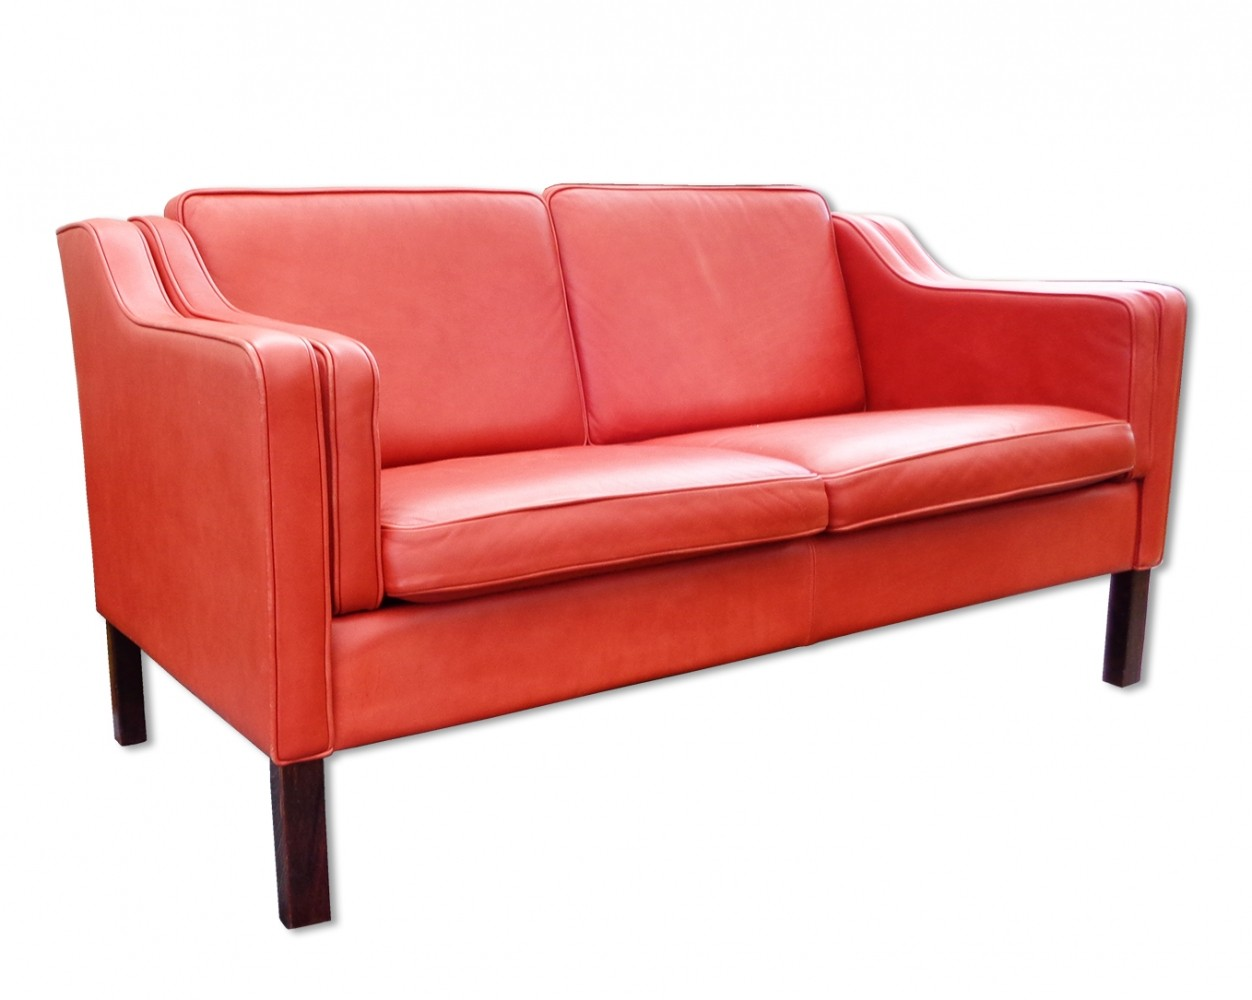 Model Eva sofa by Stouby Design Team for Stouby Denmark, 1980s